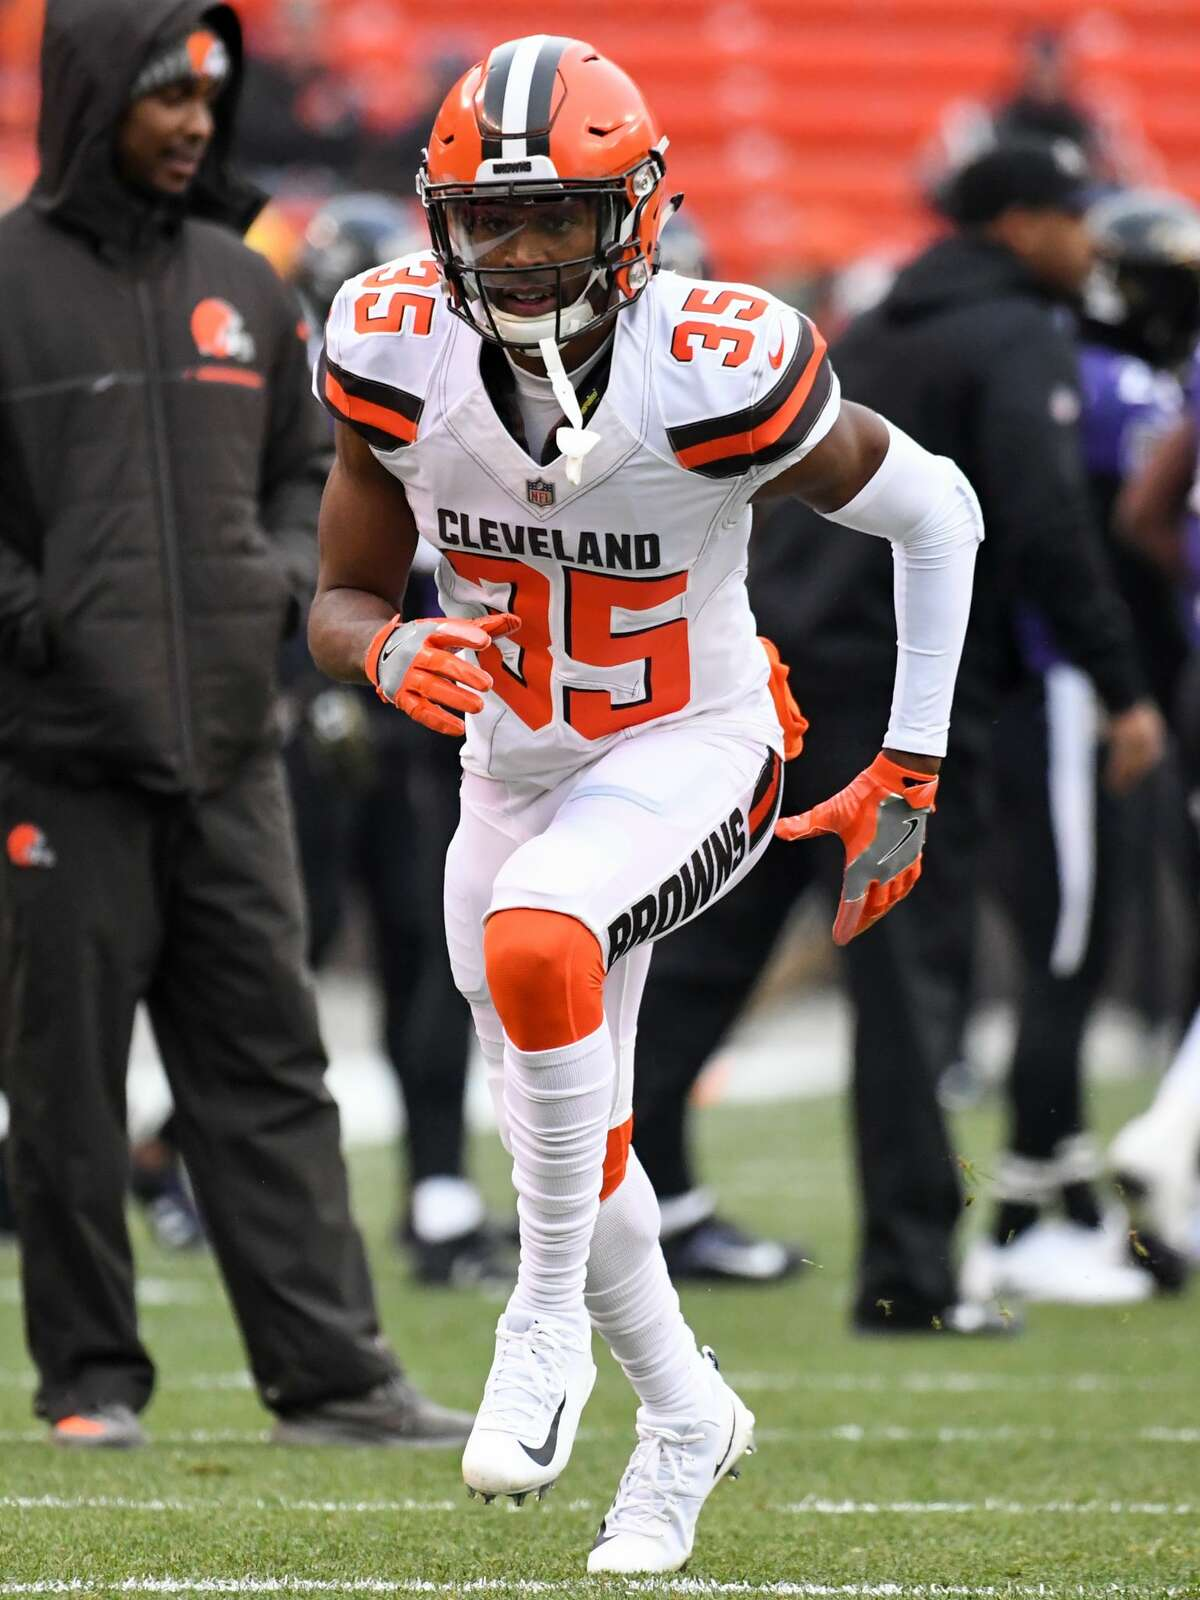 CLEVELAND, OH - DECEMBER 17, 2017: Defensive back C.J. Smith #35 of the Cleveland Browns warms up on the field prior to a game on December 17, 2017 against the Baltimore Ravens at FirstEnergy Stadium in Cleveland, Ohio. Baltimore won 27-10. (Photo by: 2017 Nick Cammett/Diamond Images/Getty Images)